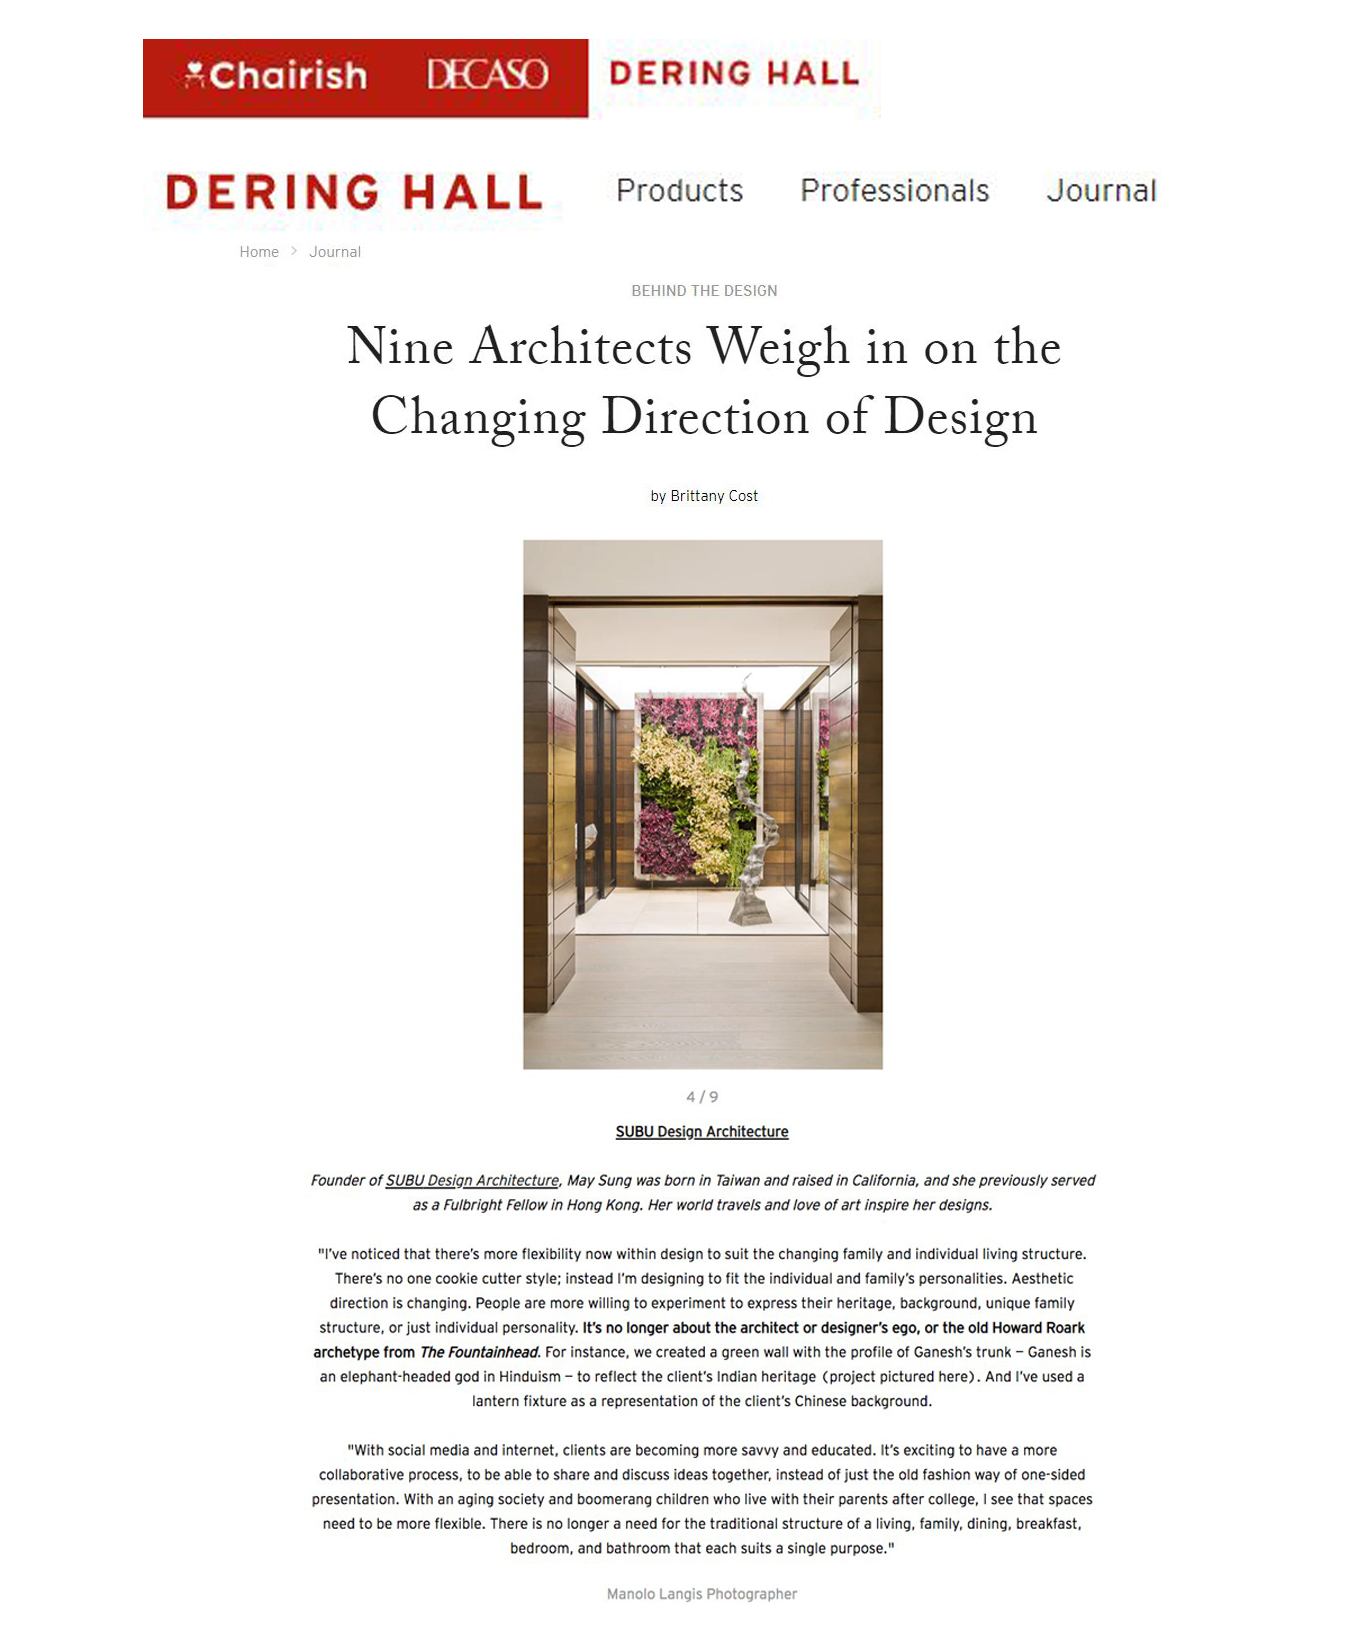 dering hall - JANUARY 2019 - NINE ARCHITECTS WEIGH IN ON THE CHANGING DIRECTION OF DESIGN